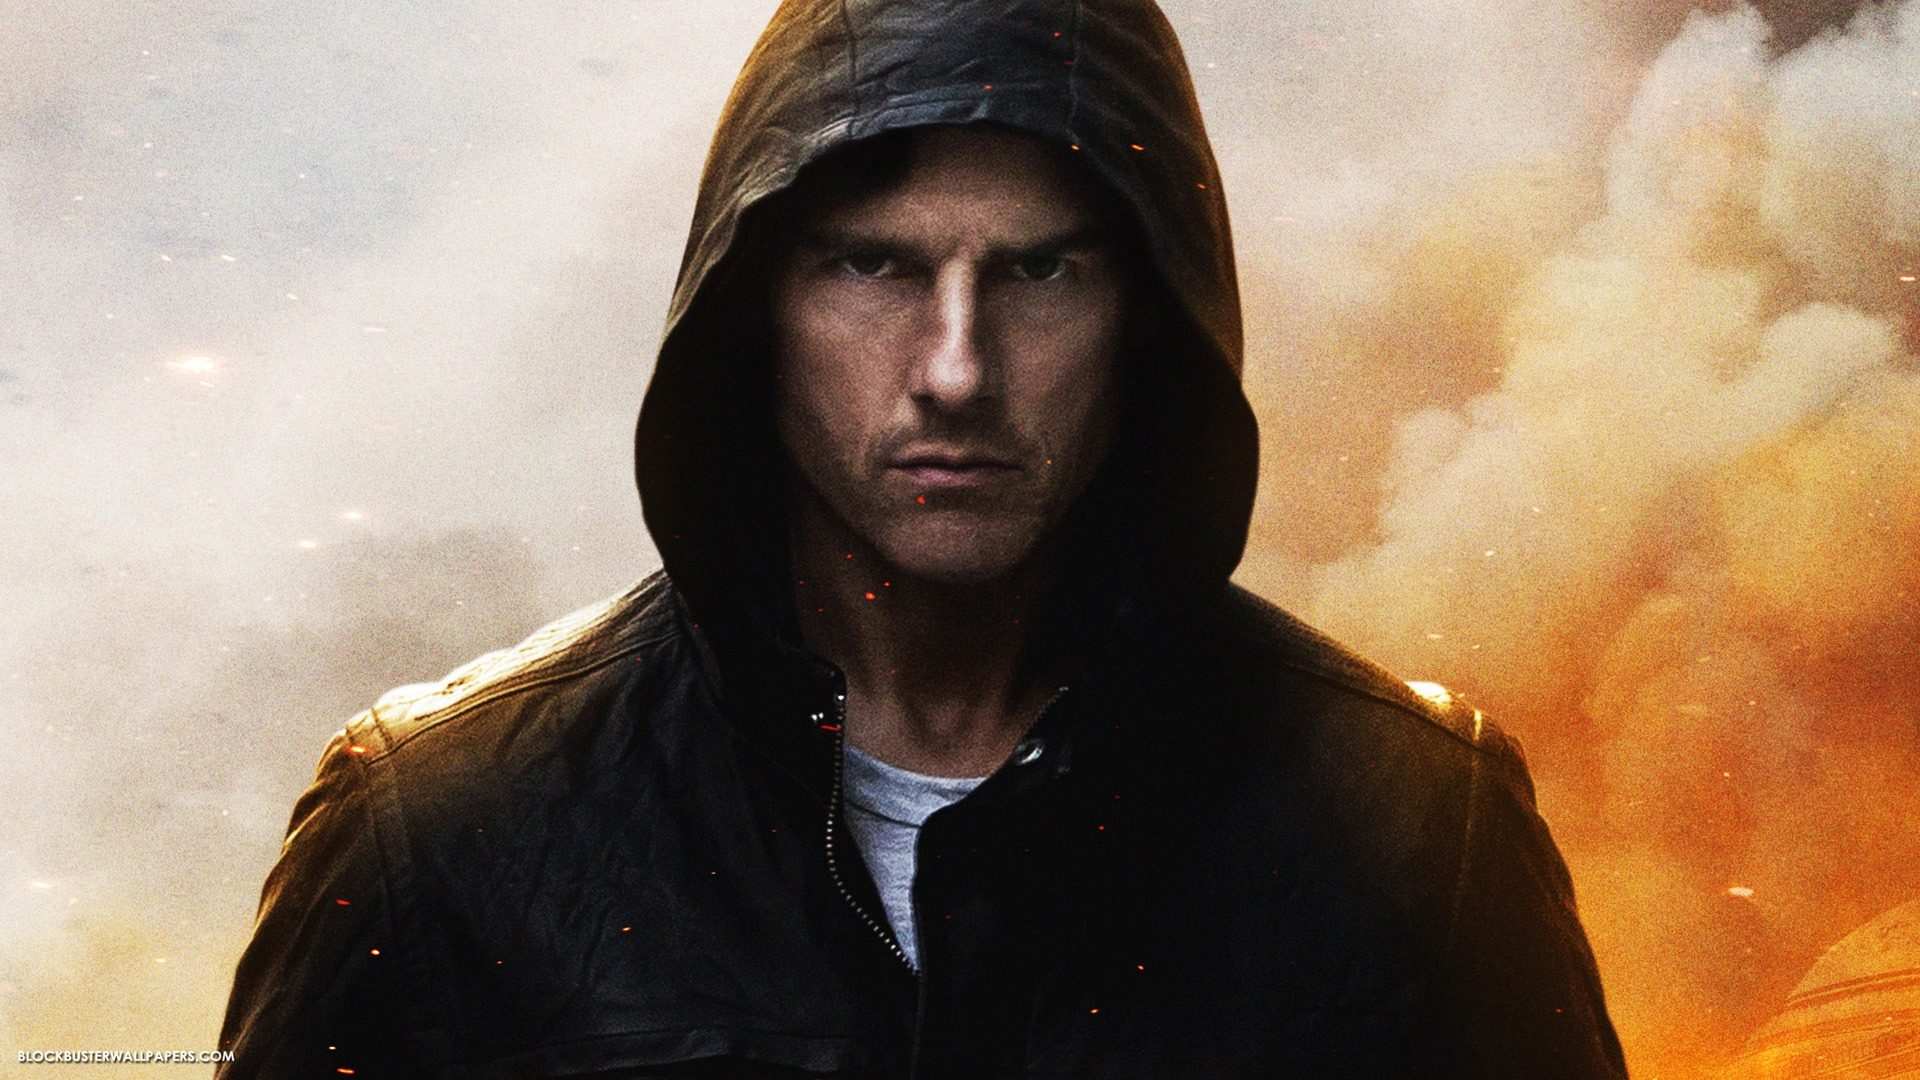 Mission:Impossible 5' Headed to Screens Christmas 2015